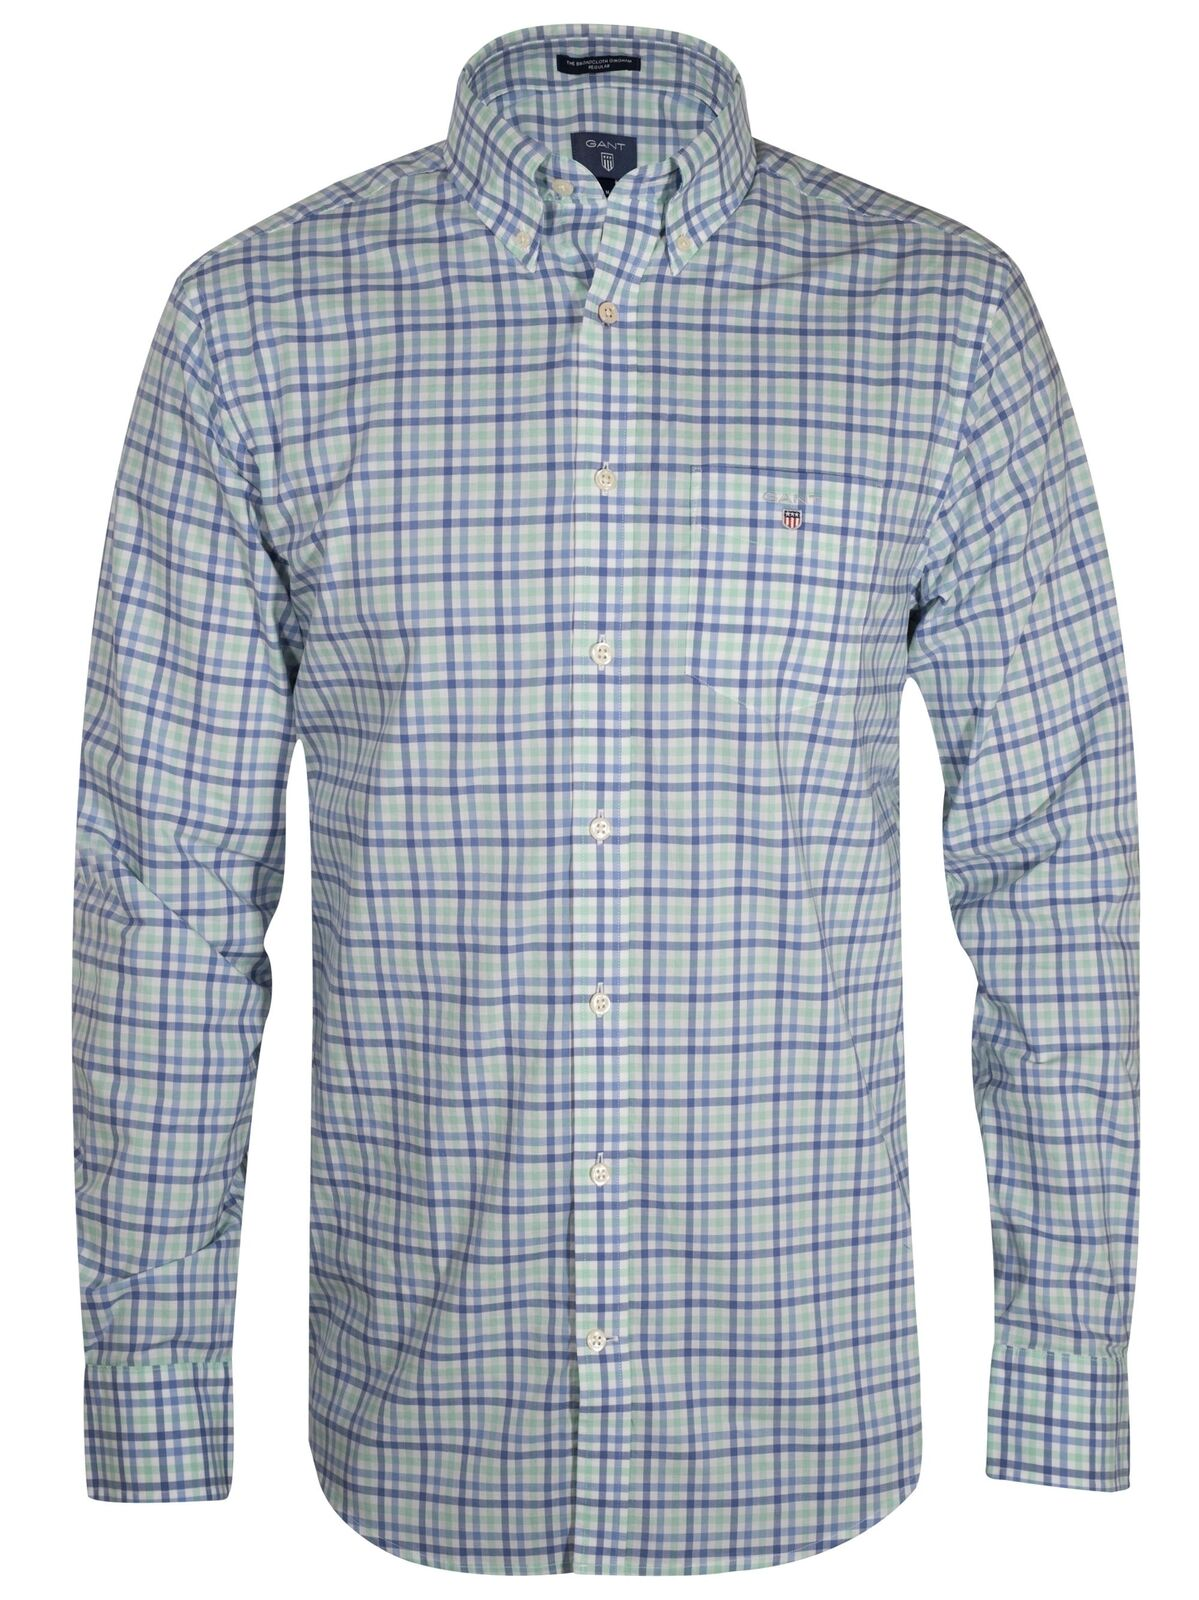 GANT Spearmint Gingham Long-Sleeve Shirt